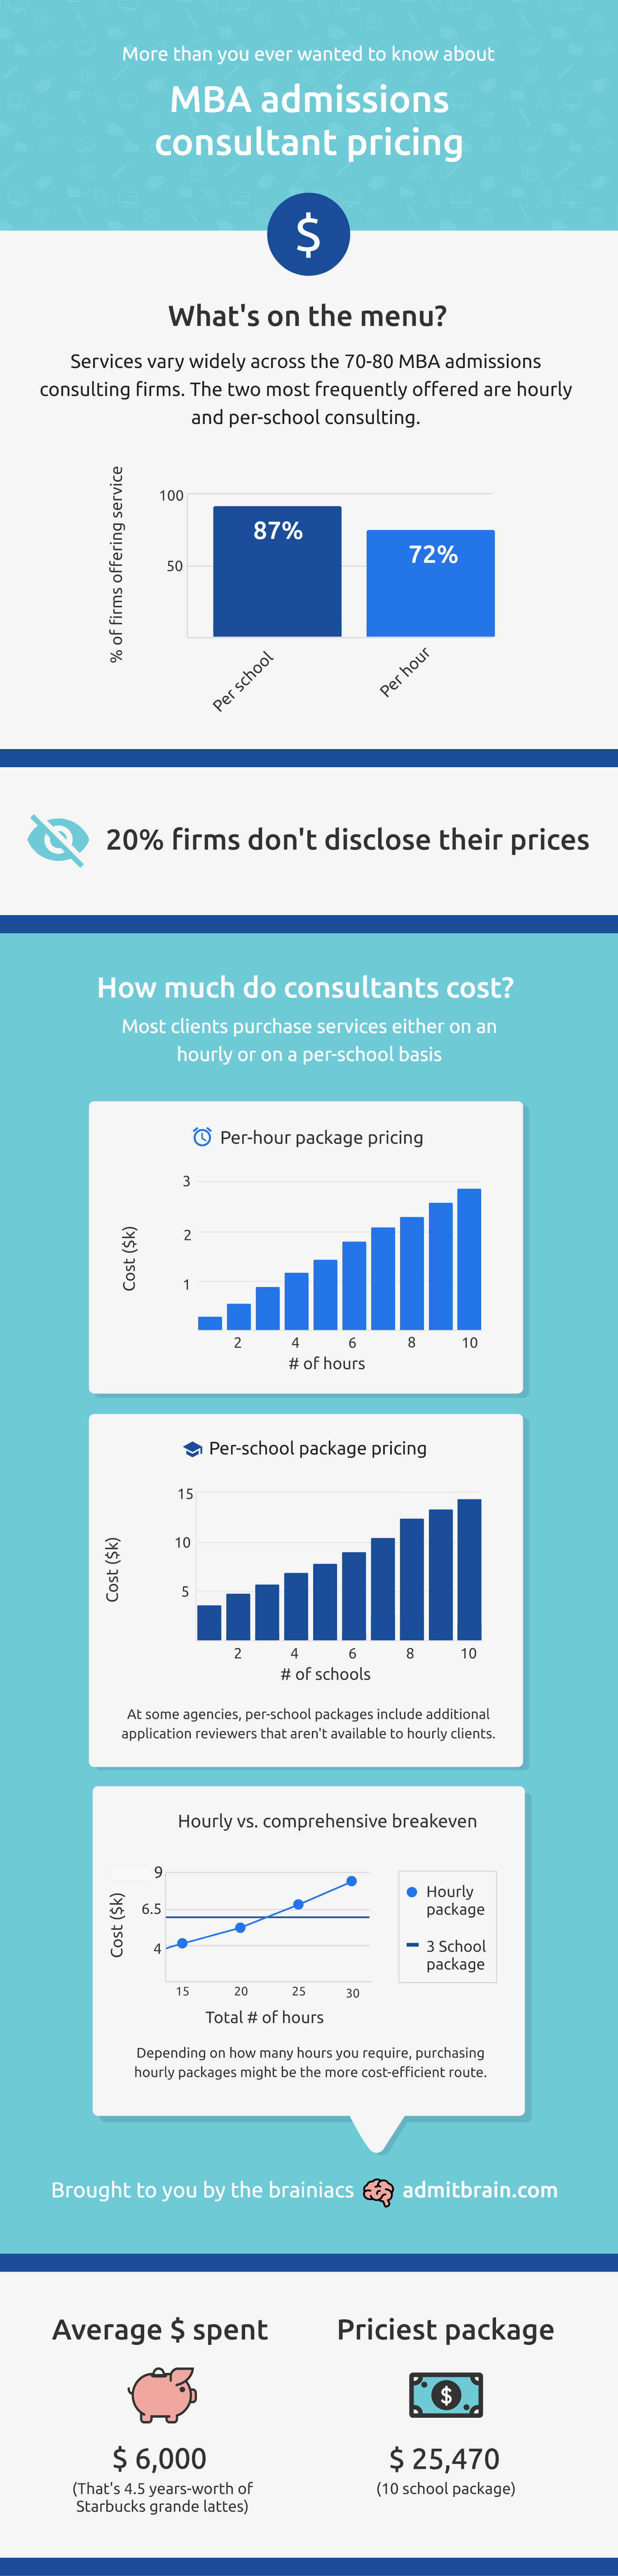 An infographic detailing descriptive statistics for the pricing of services offered by MBA admissions consultants.